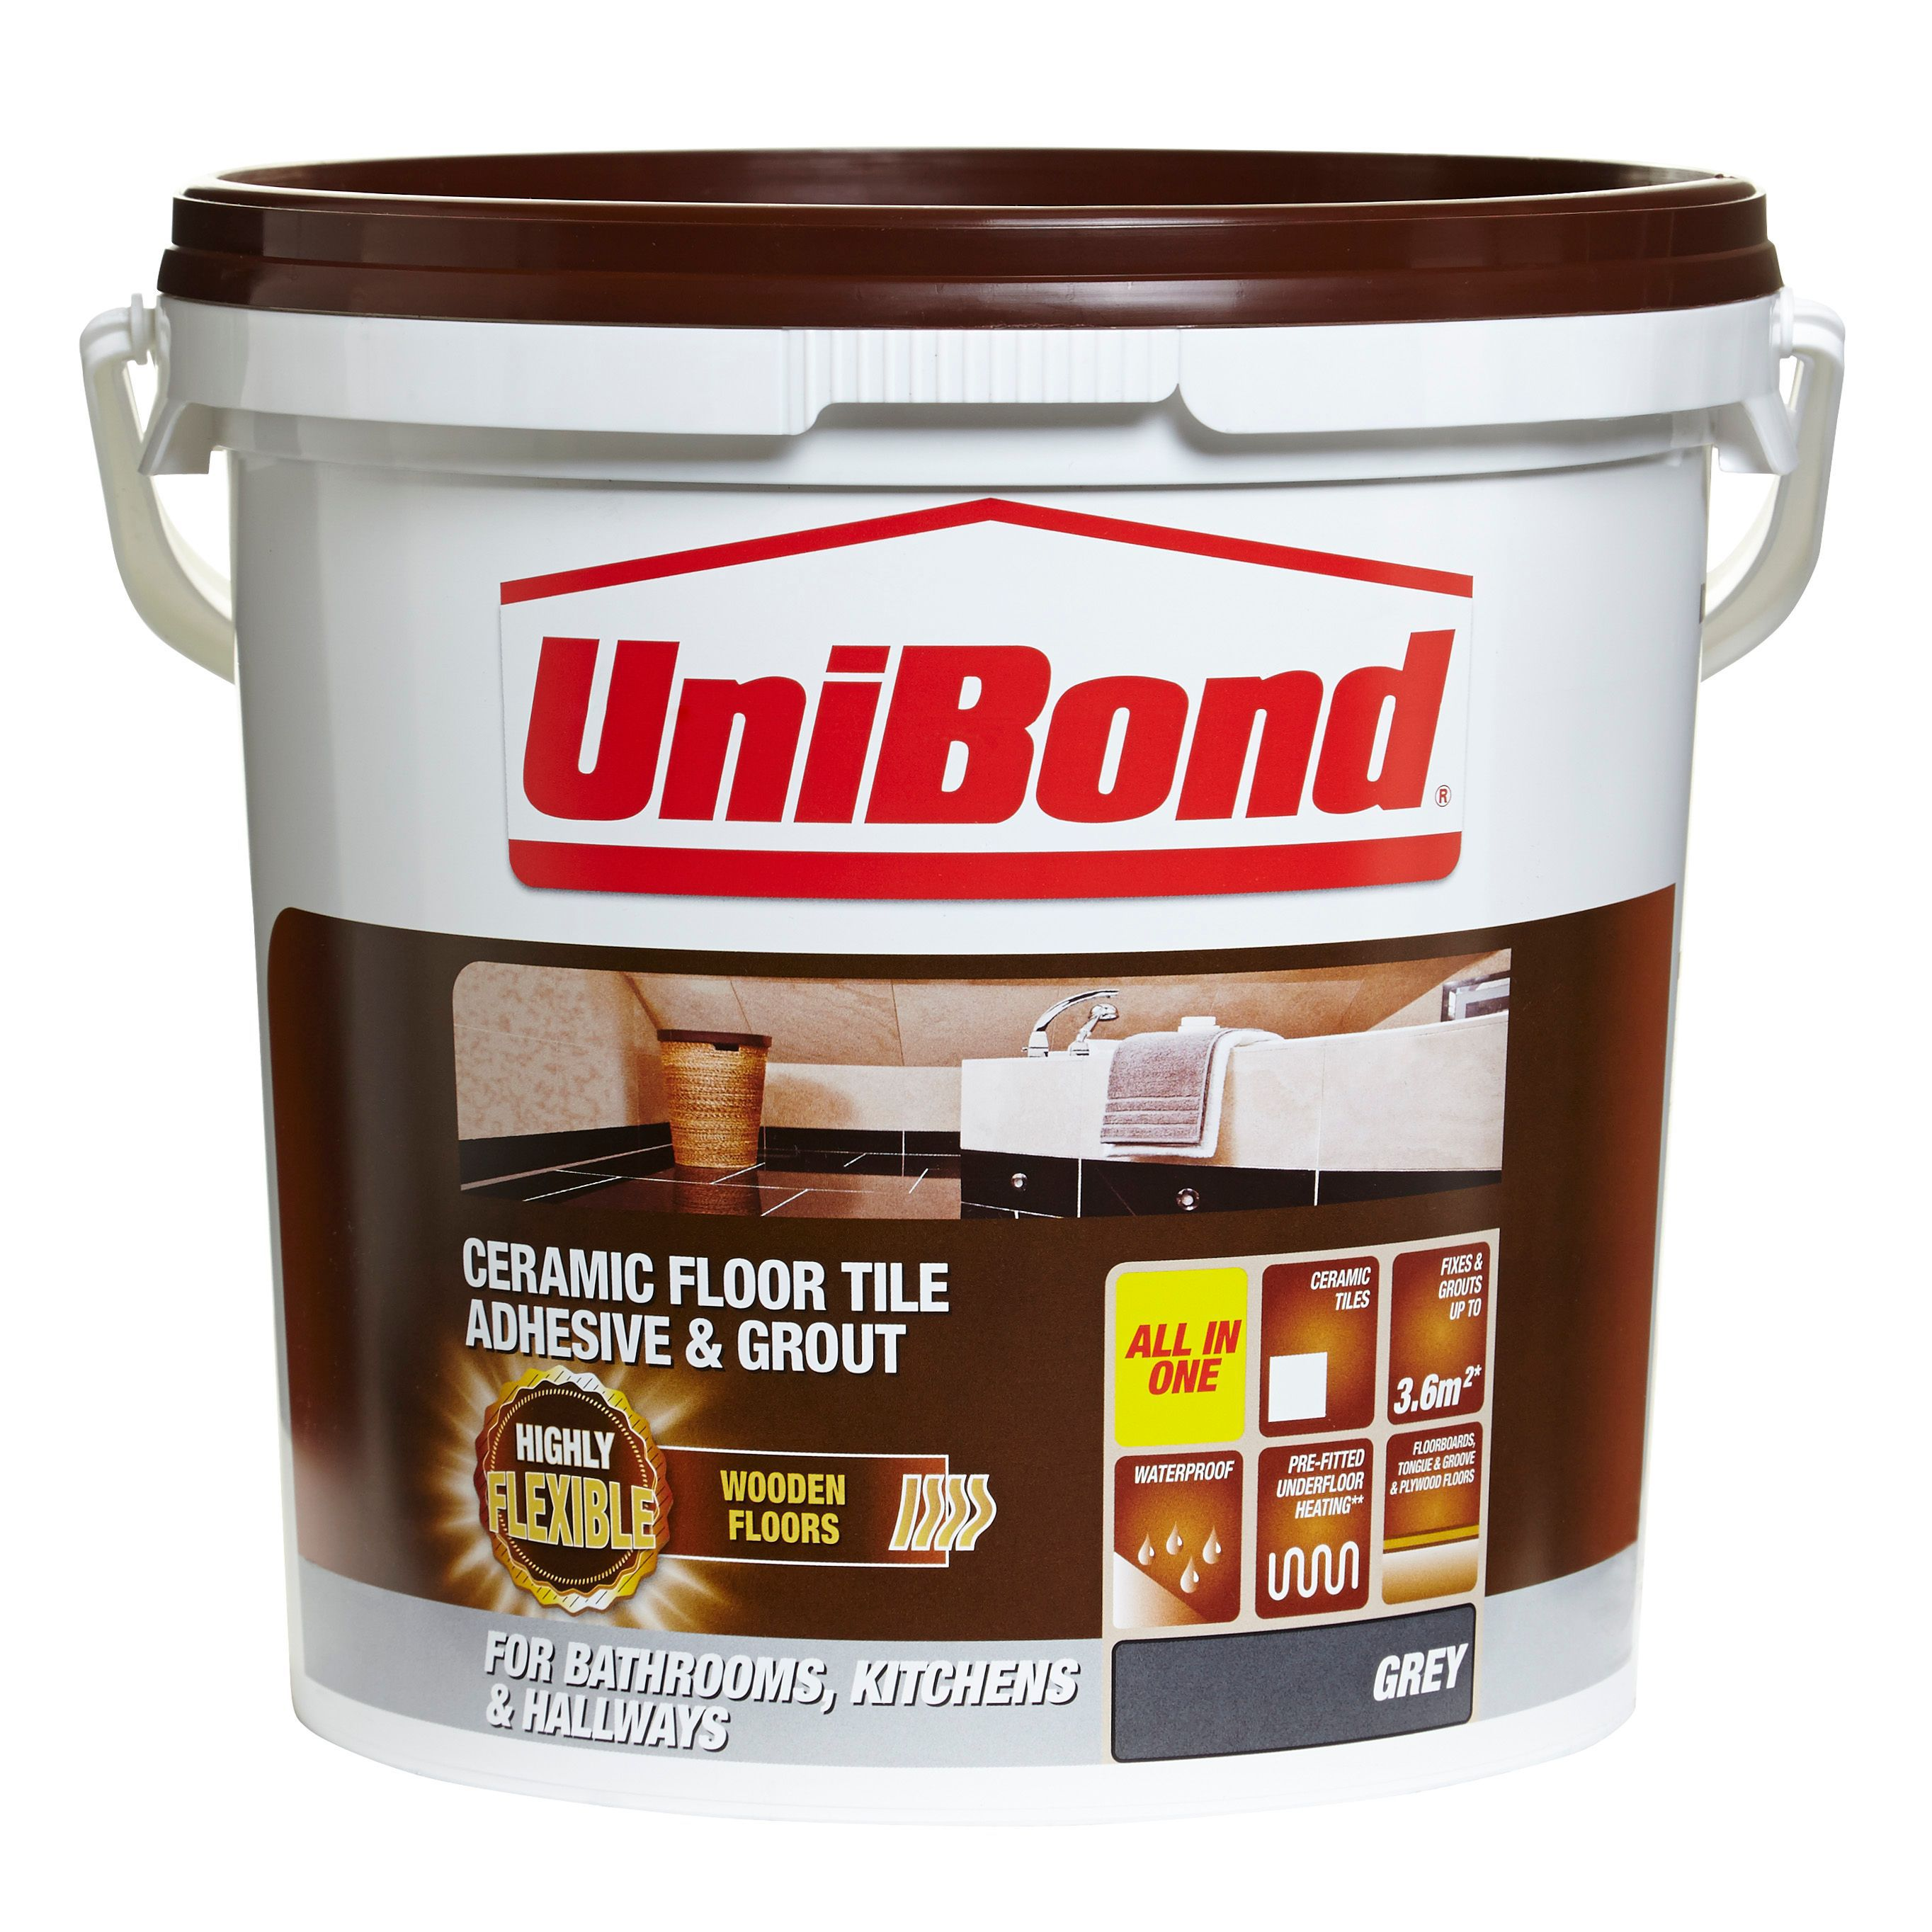 Unibond Ready To Use Floor Tile Adhesive Grout Grey 14 3kg Departments Diy At B Q